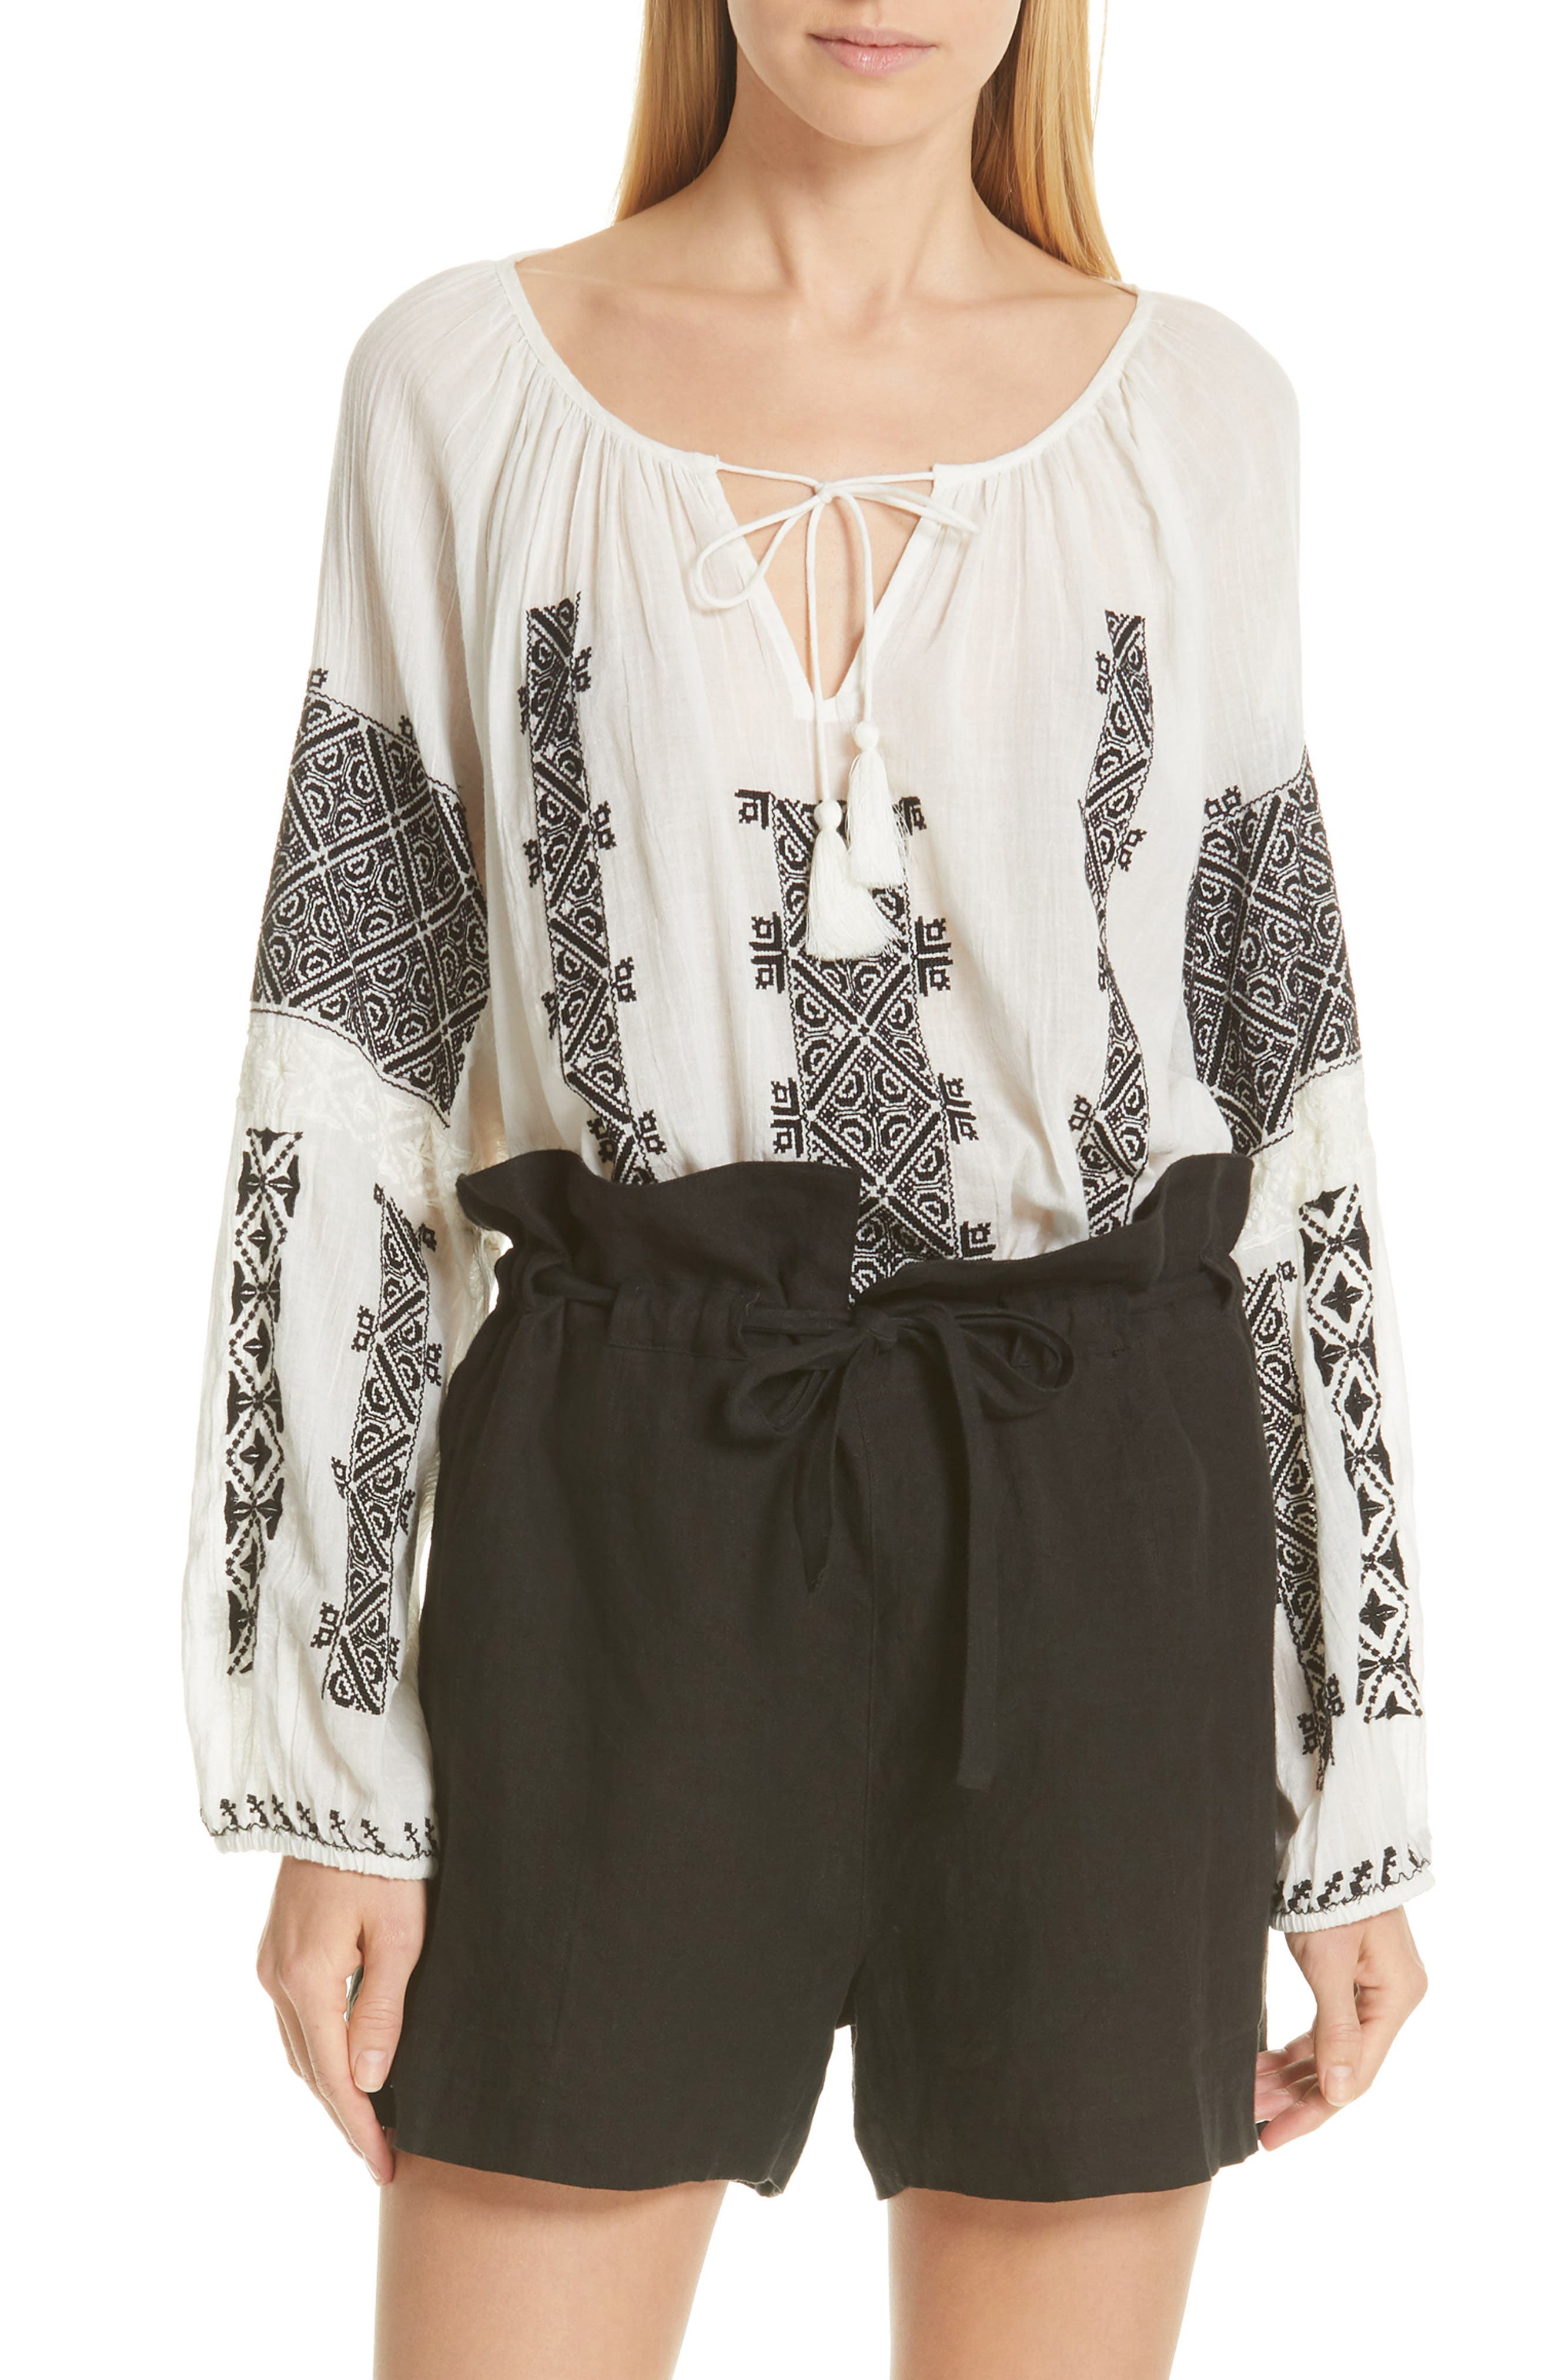 NILI LOTAN Alassio Embroidered Blouse, Main, color, IVORY WITH BLACK EMBROIDERY